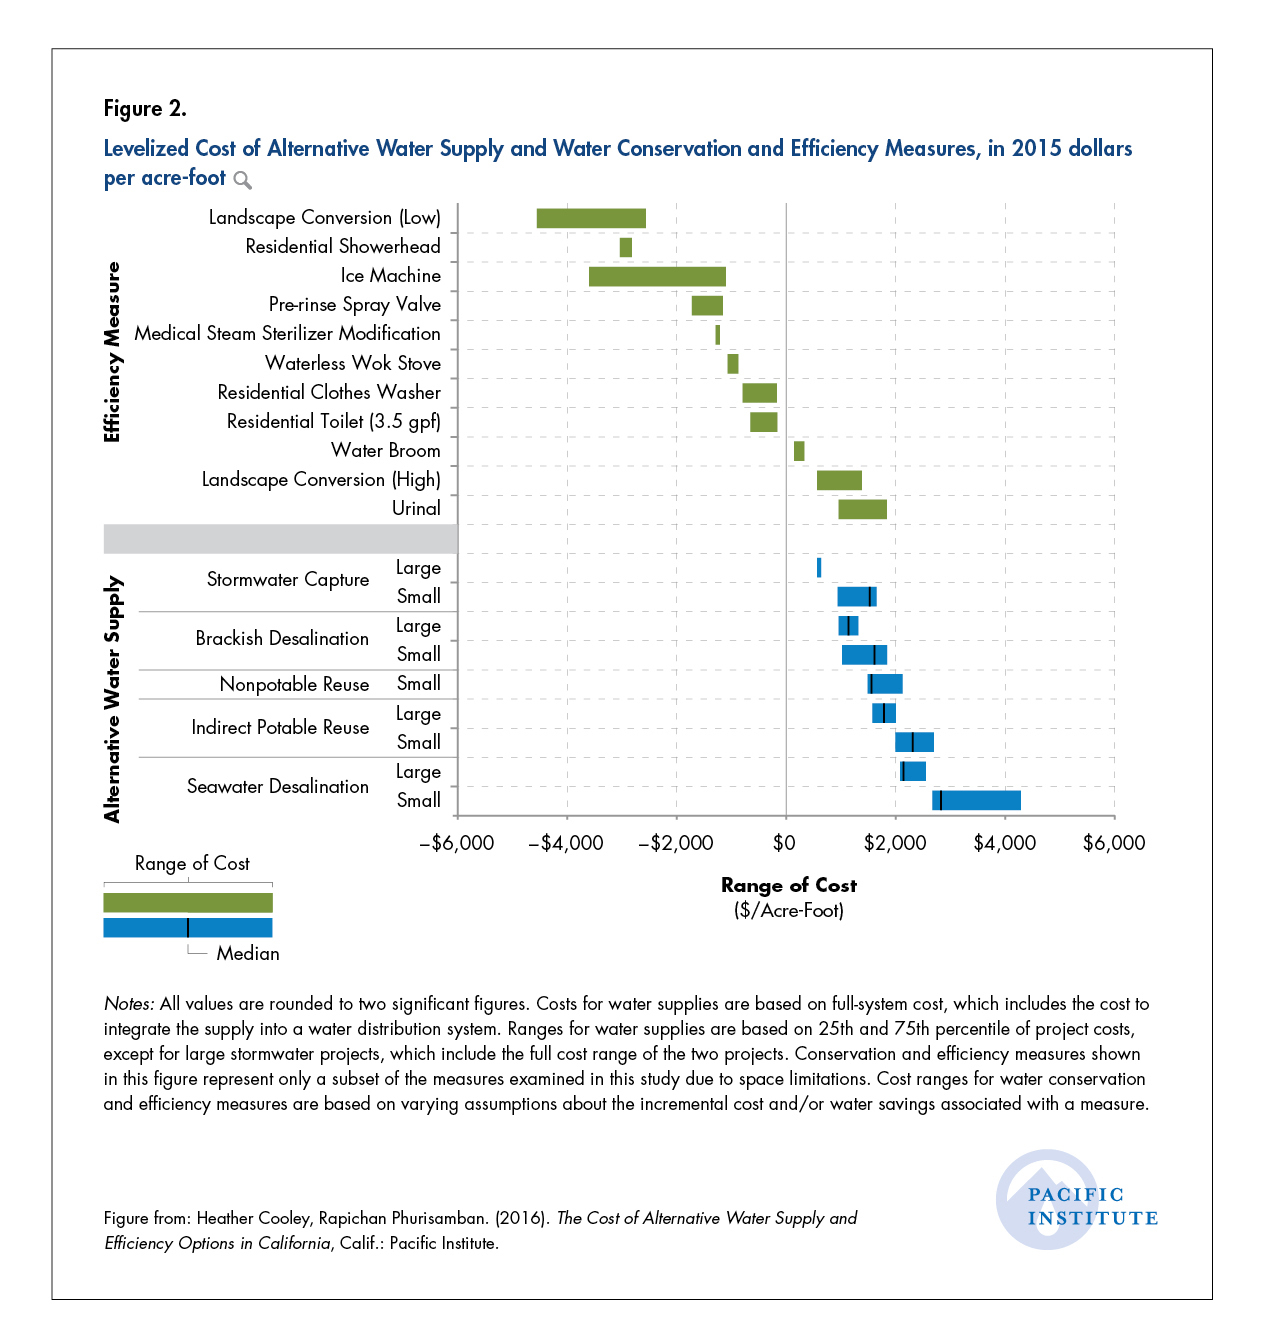 The Cost of Alternative Water Supply and Efficiency Options in